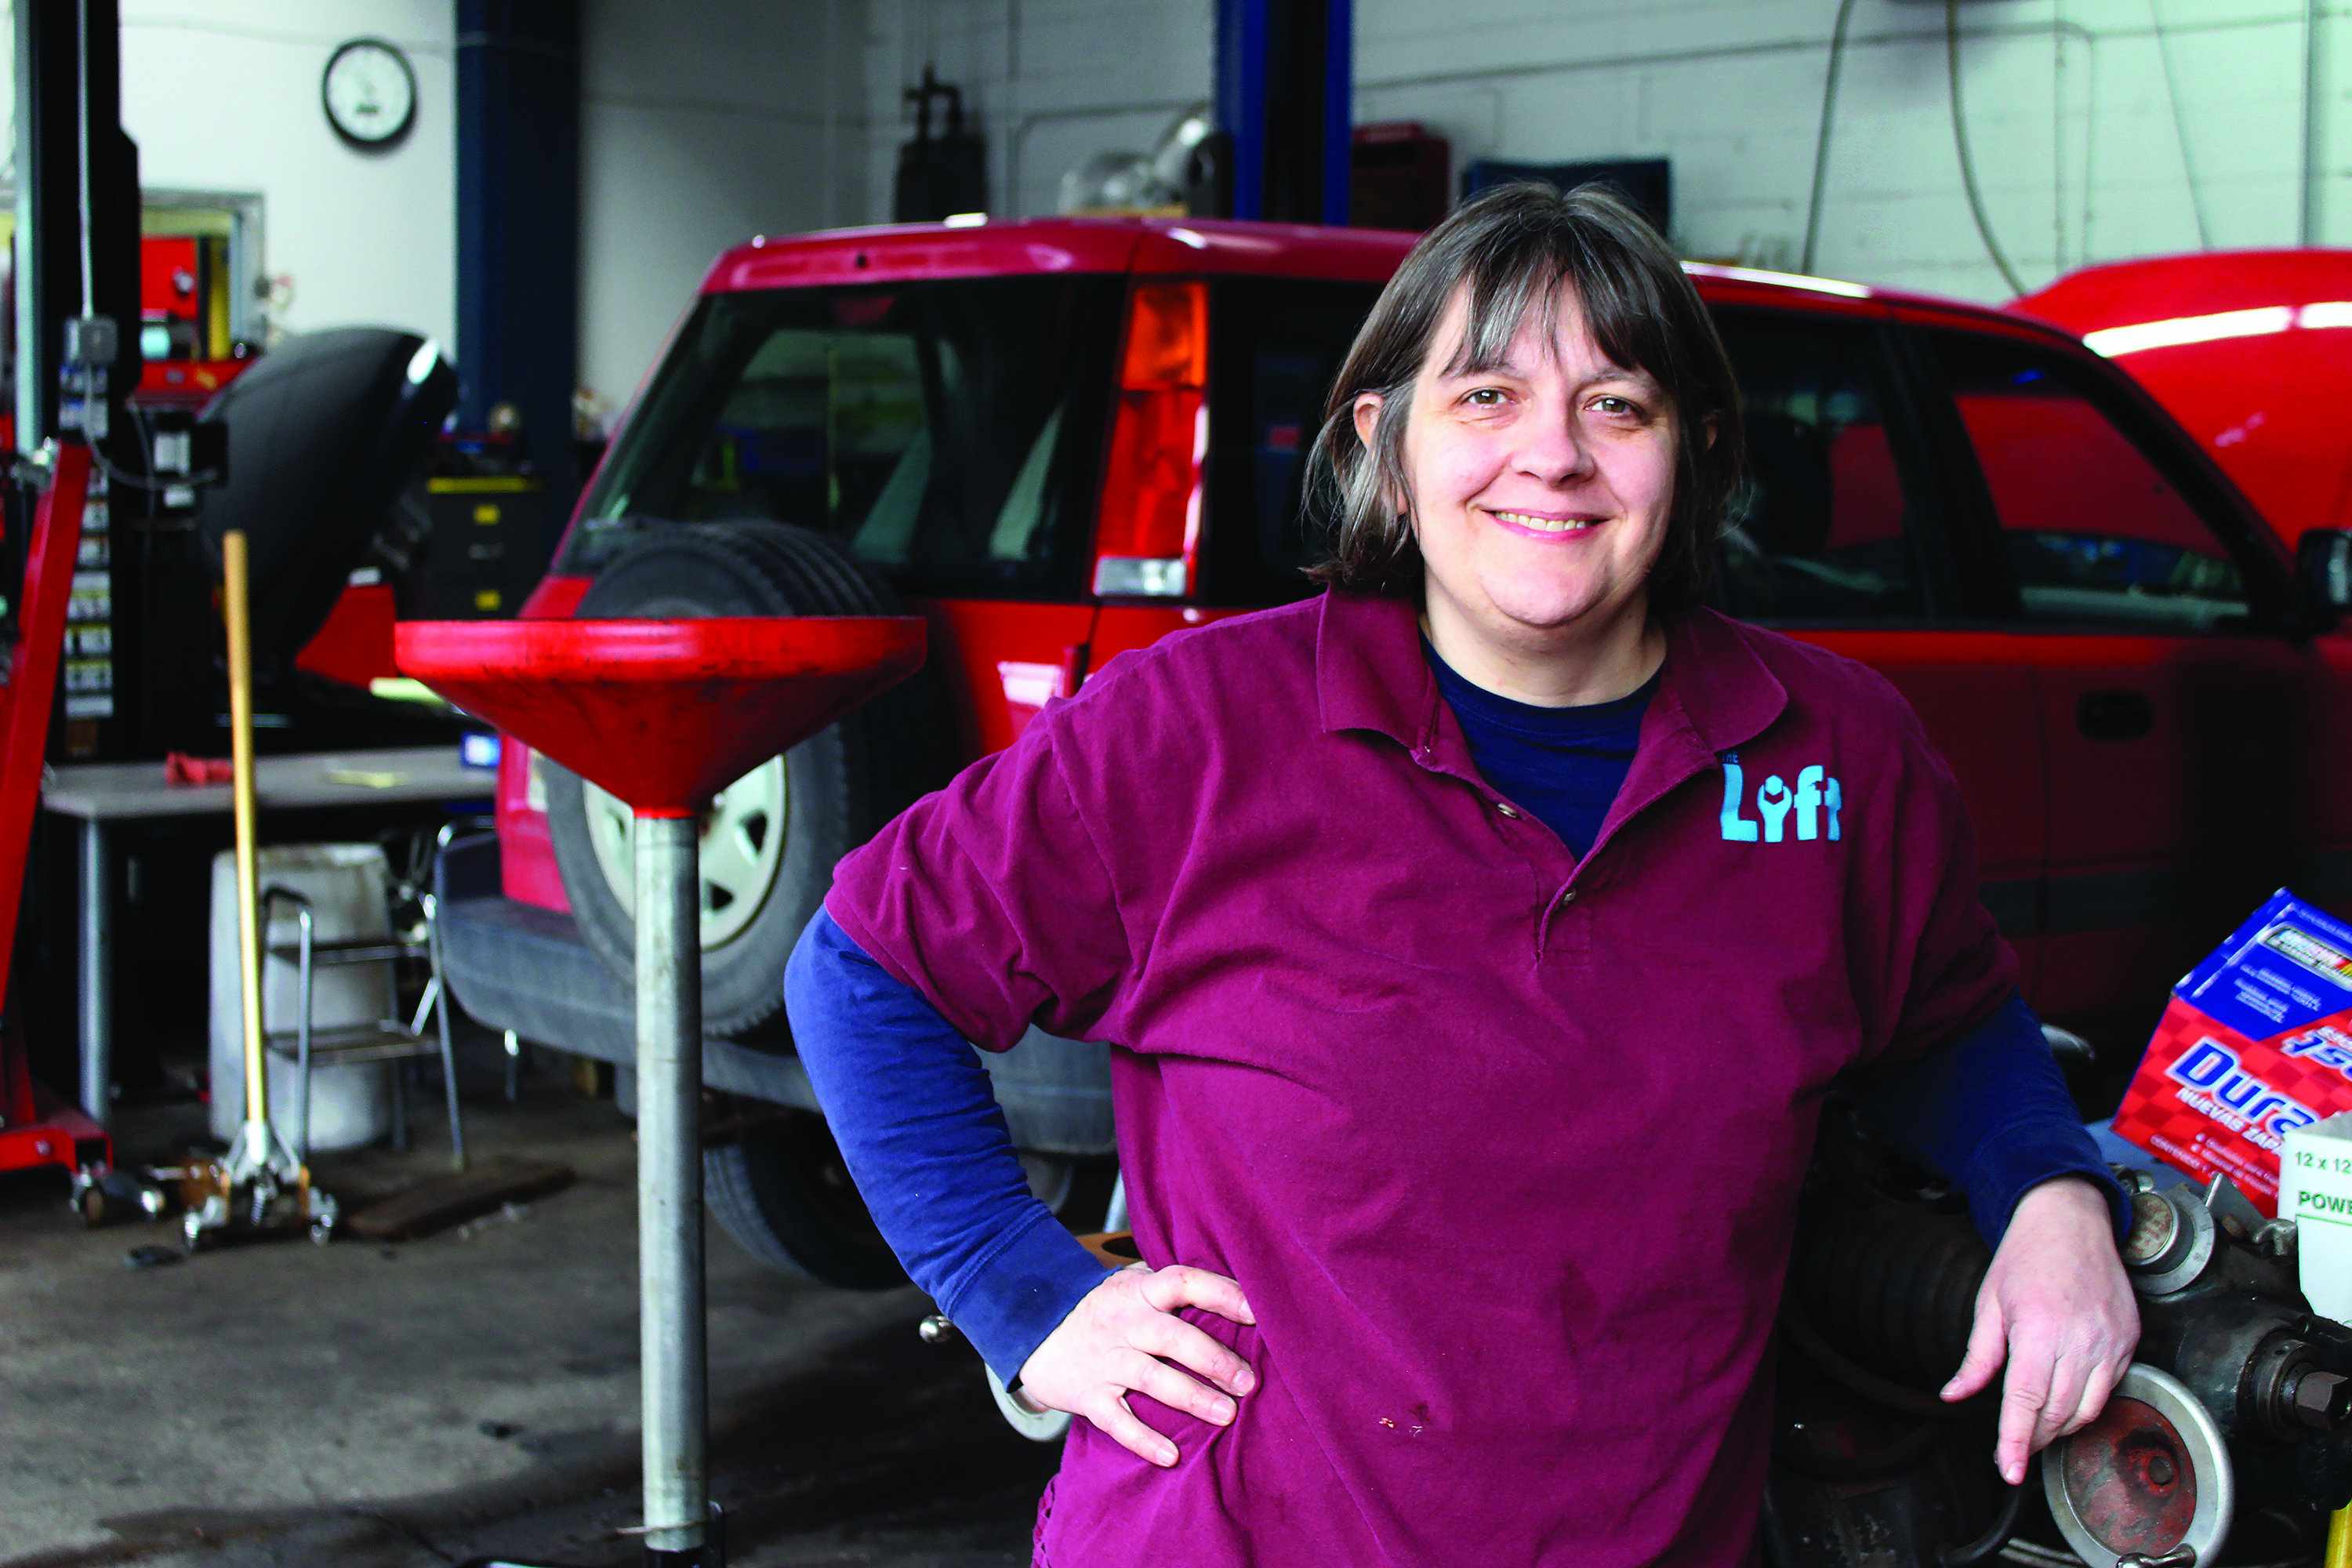 Cathy Heying, Dunwoody Alumni and founder of The Lift Garage, stands next to a car she is repairing. Headshot.